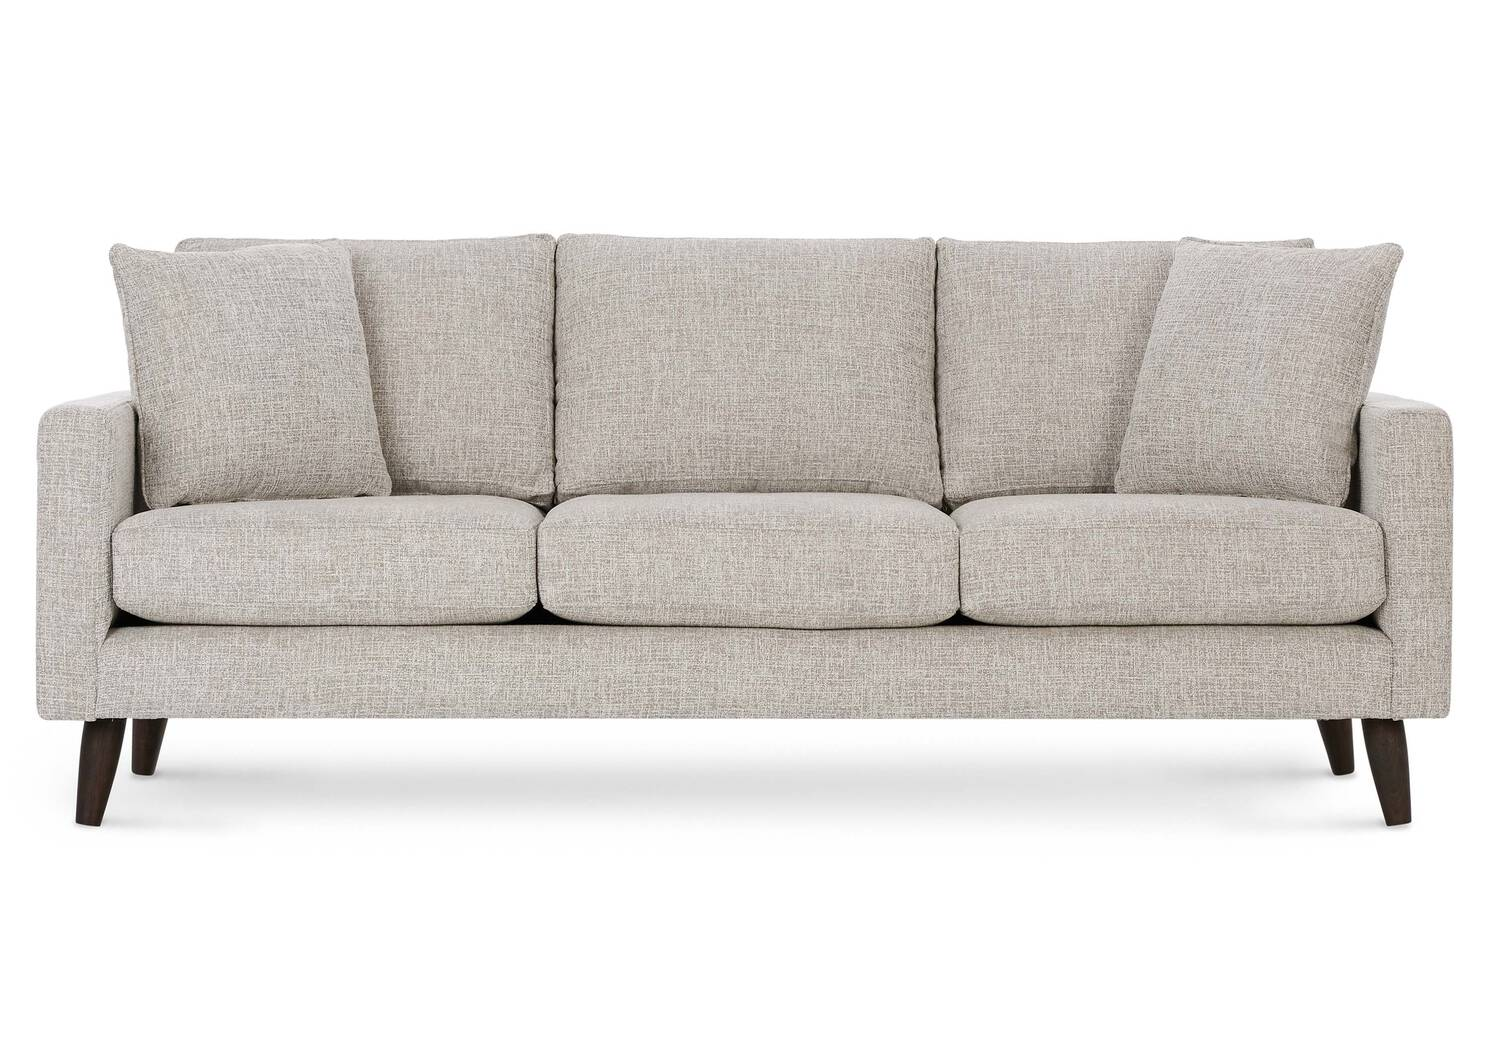 Santana Sofa -Giovanna Moondust